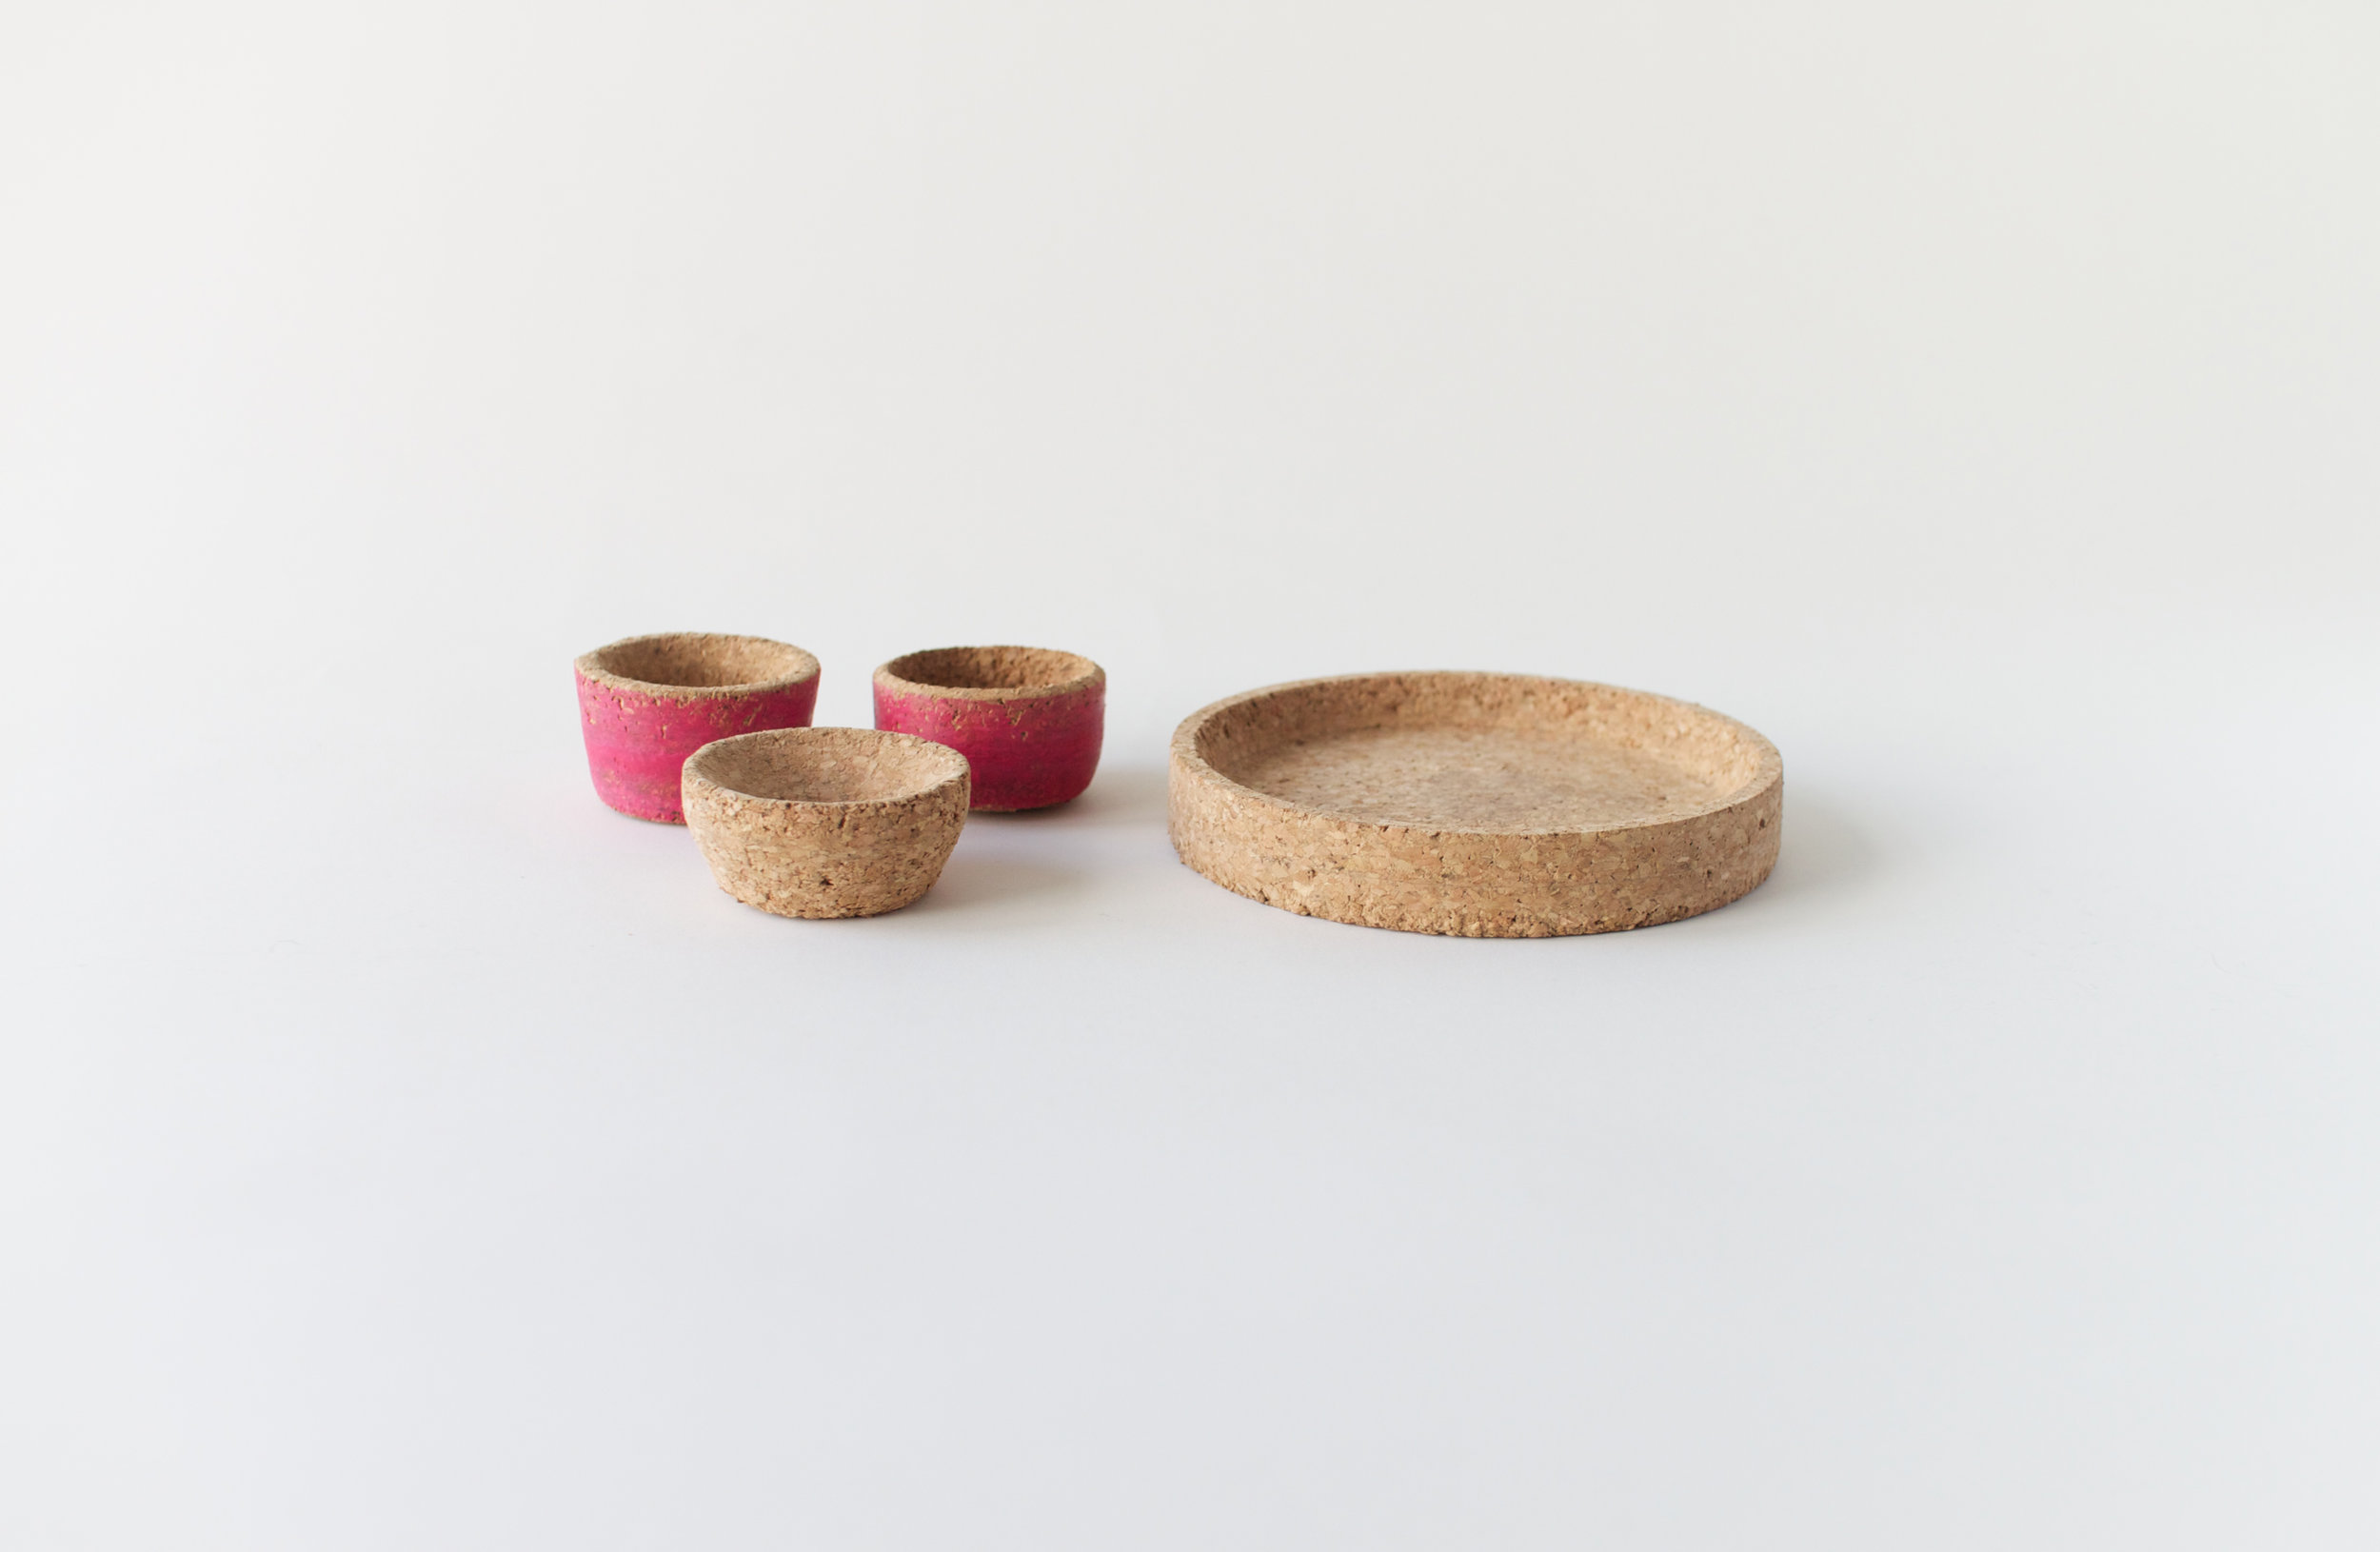 Blender-turned cork pinch pots, wax crayon finished